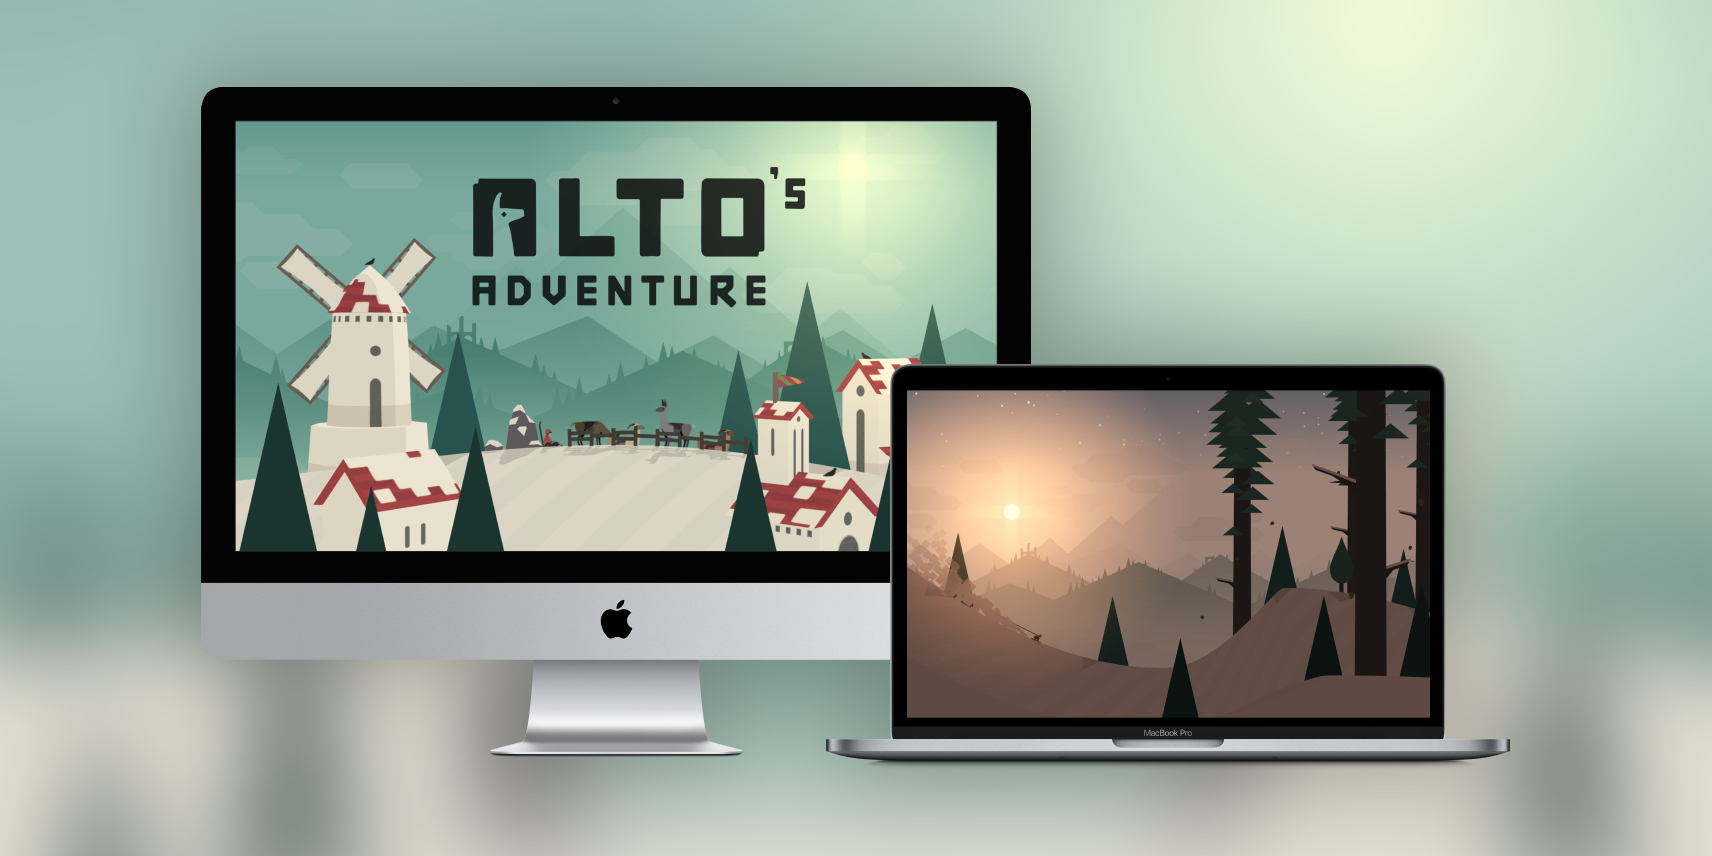 award winning ios game alto s adventure now available on the mac